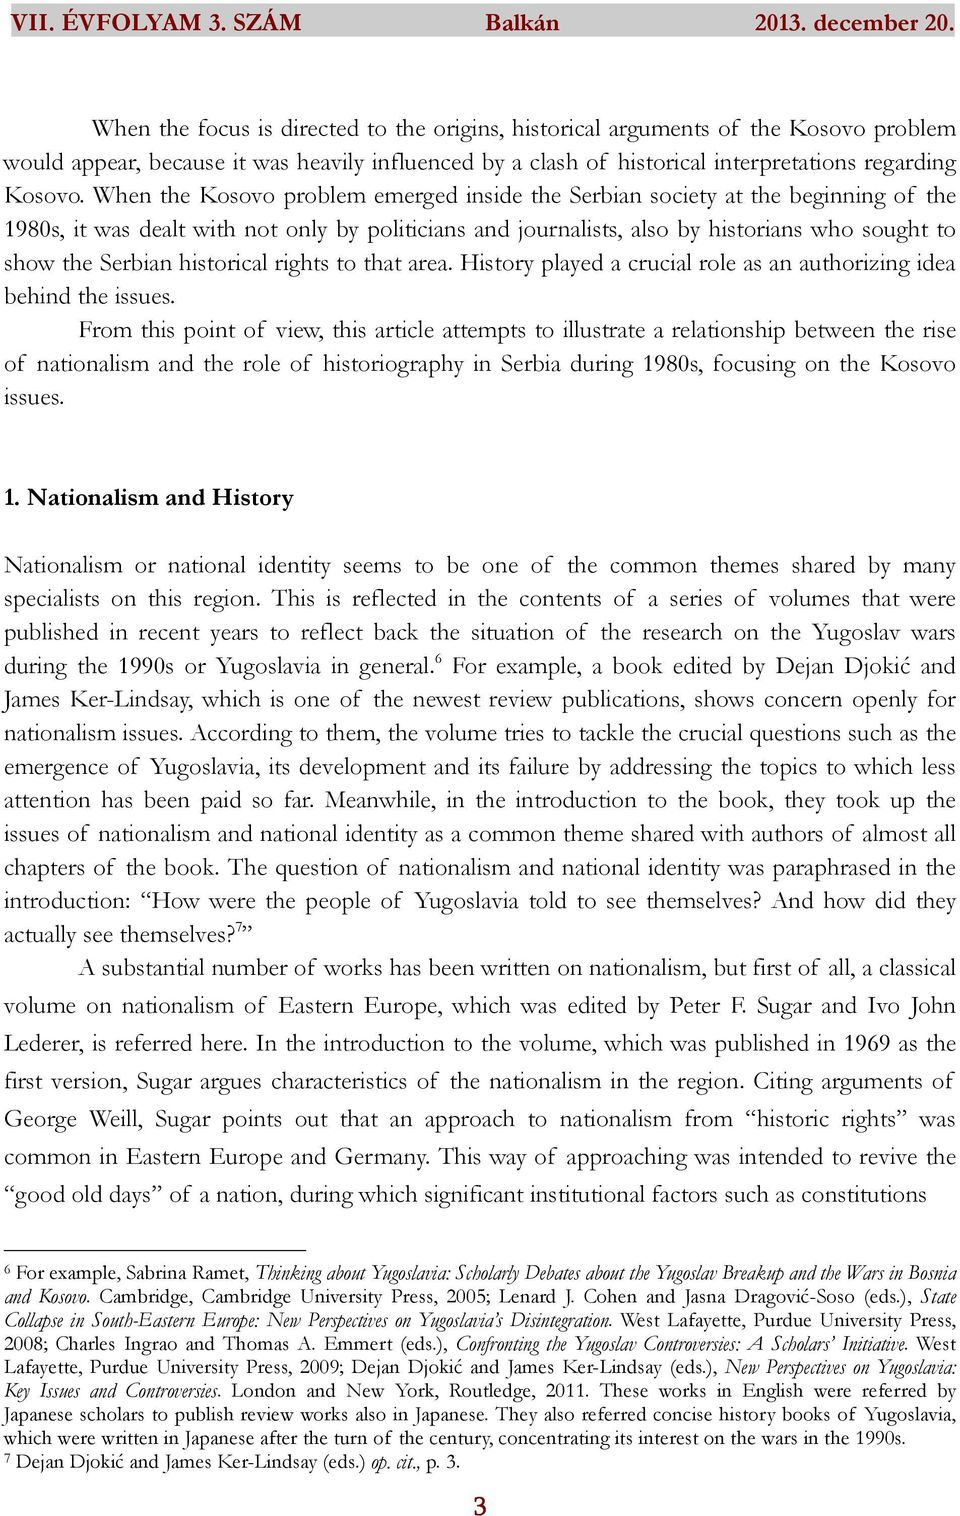 historical rights to that area. History played a crucial role as an authorizing idea behind the issues.